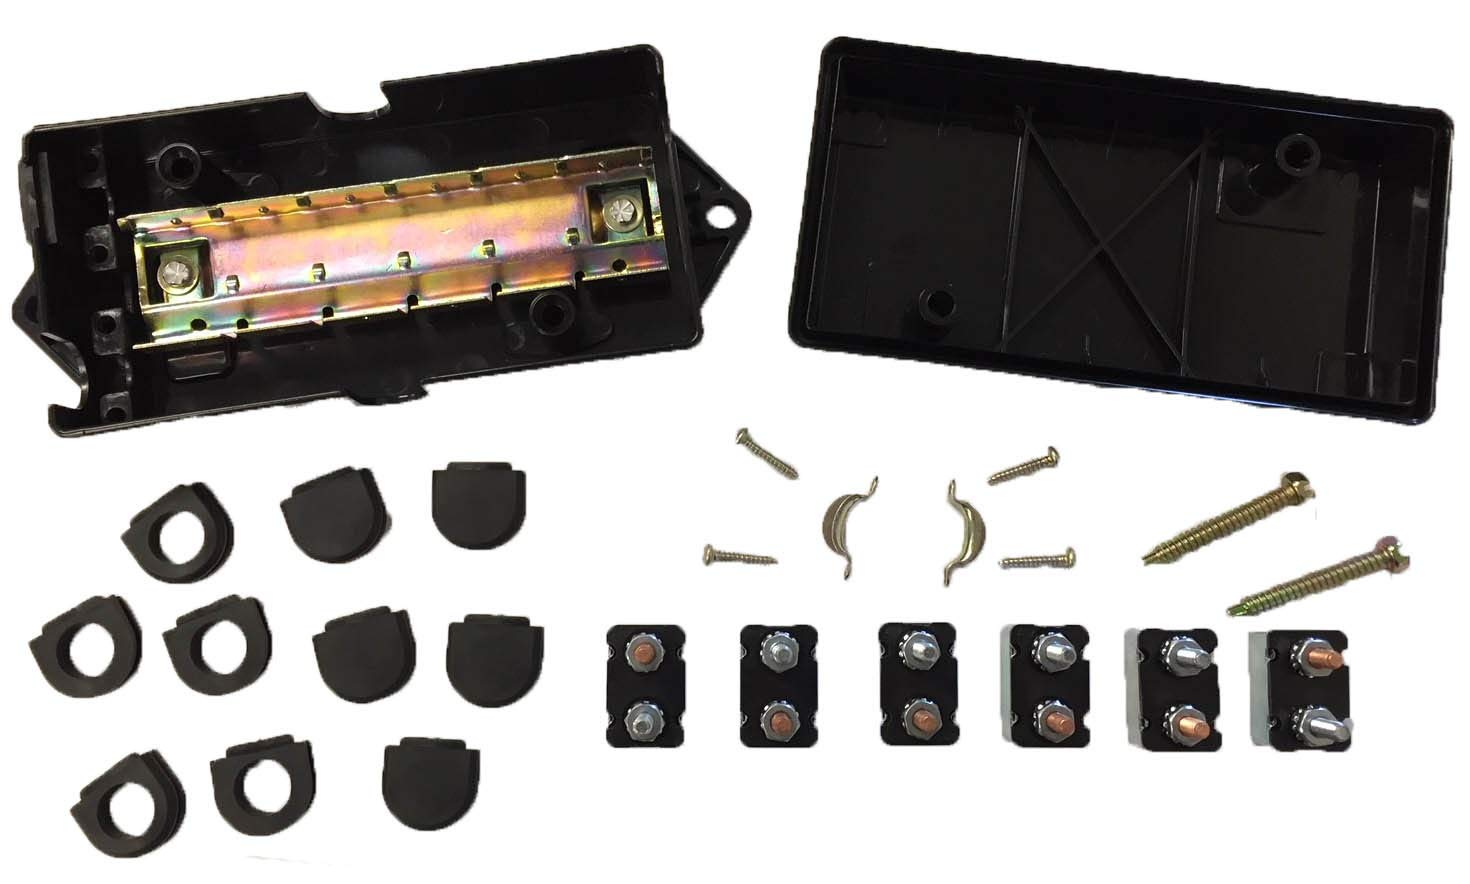 Truck Upfitters' Trailer Tongue Enclosed 12V Junction Box with 6 Circuit Breakers for Trailers with 6-Way and 7-Way Connectors. Connects Lights, Brakes, and 12 Volt Power to 7 or 6 Pin Trailer Plug.